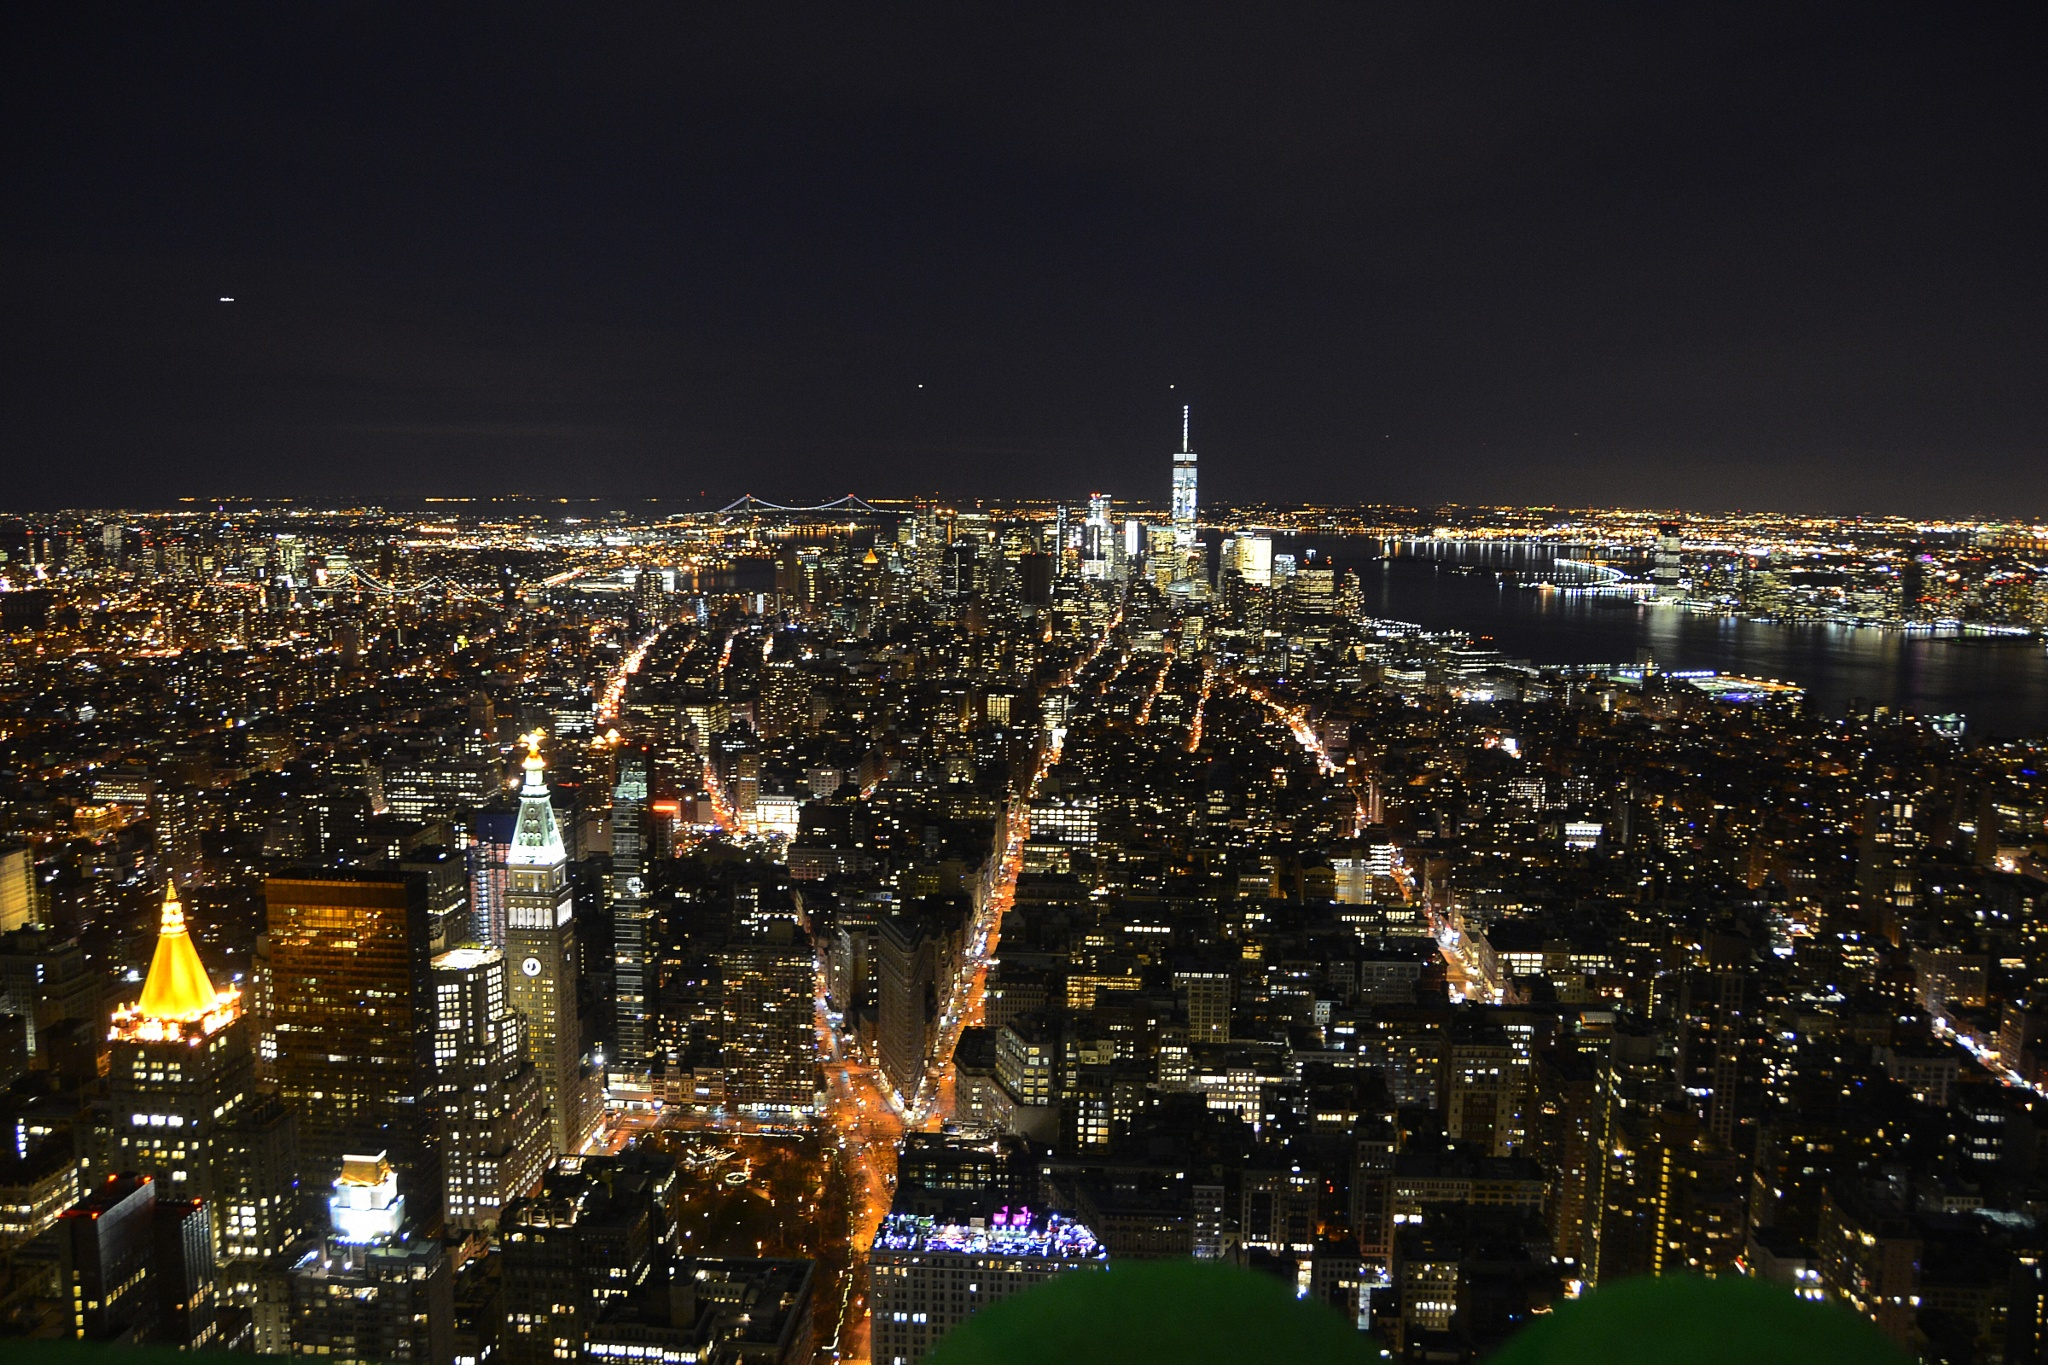 Night over NY by didiervilbert